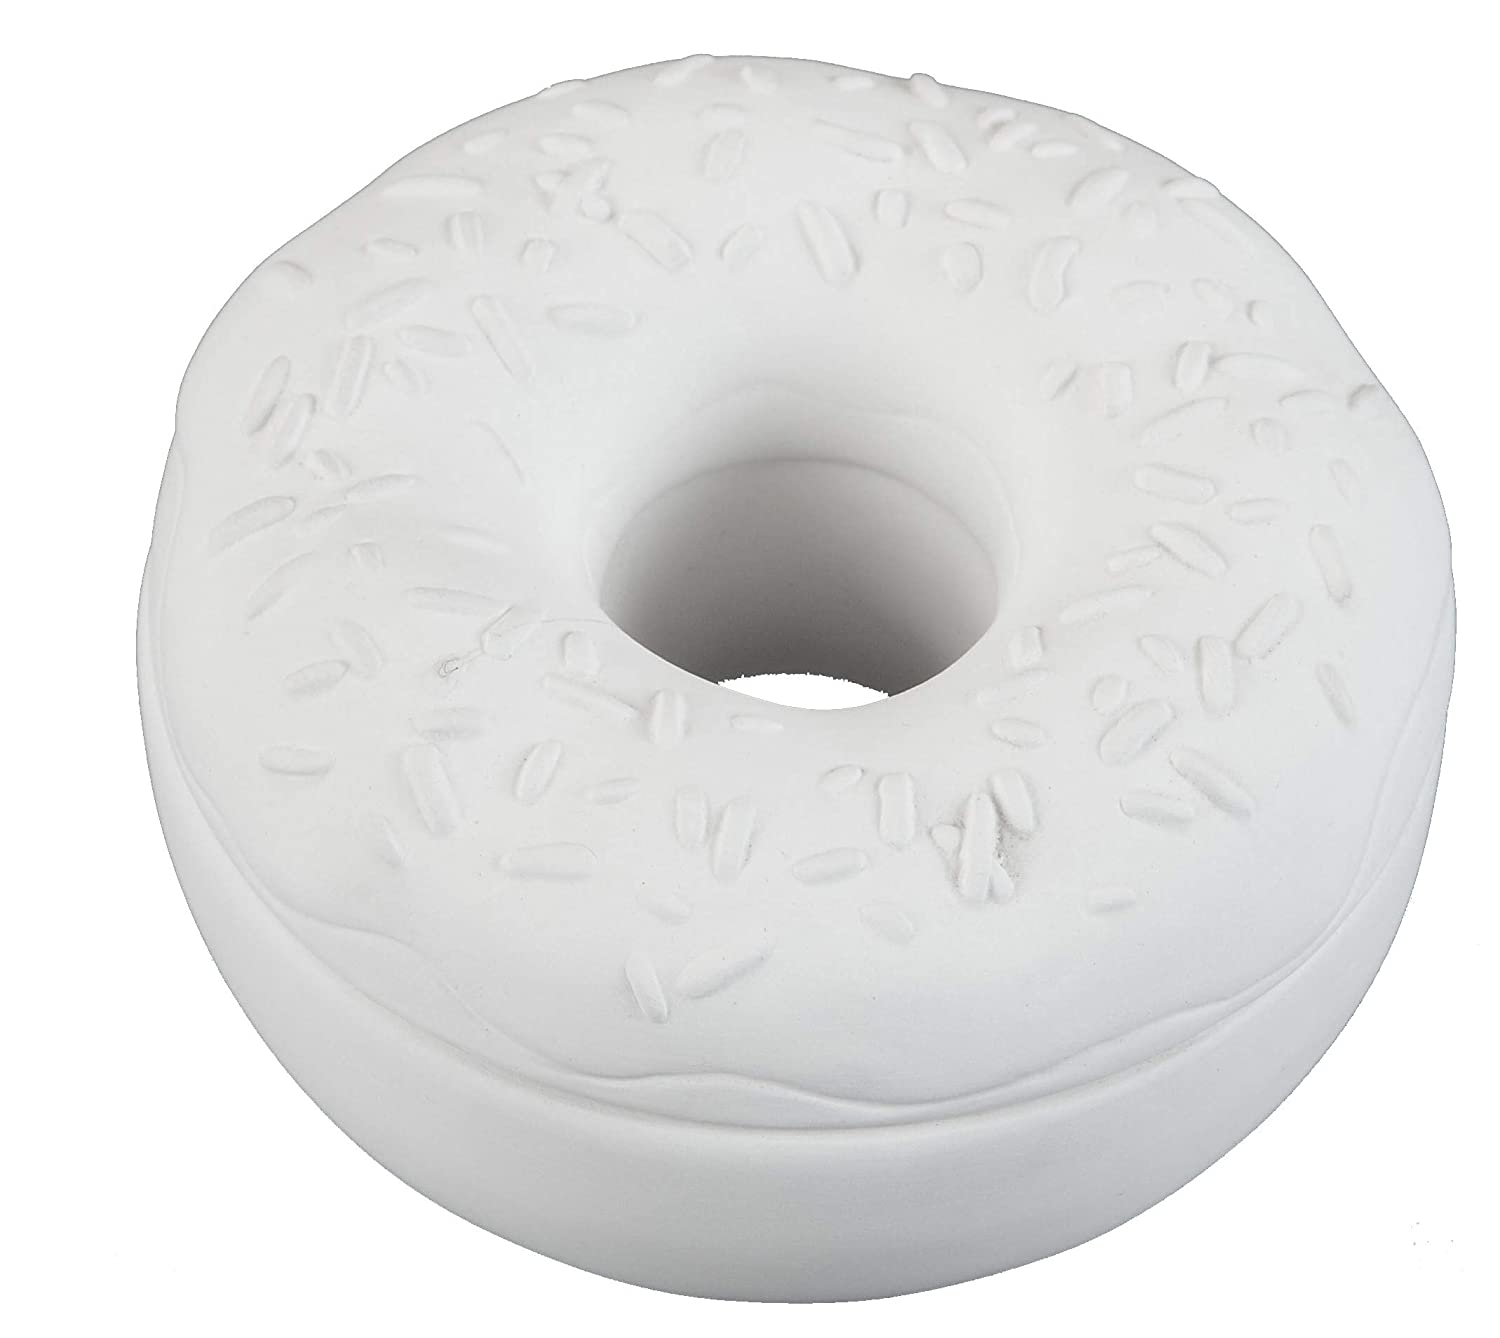 Case of 6 Creative Hobbies Donut Box with Sprinkles with How to Paint Your Own Pottery Booklet Unfinished Ceramic Bisque 4.25 inch Round